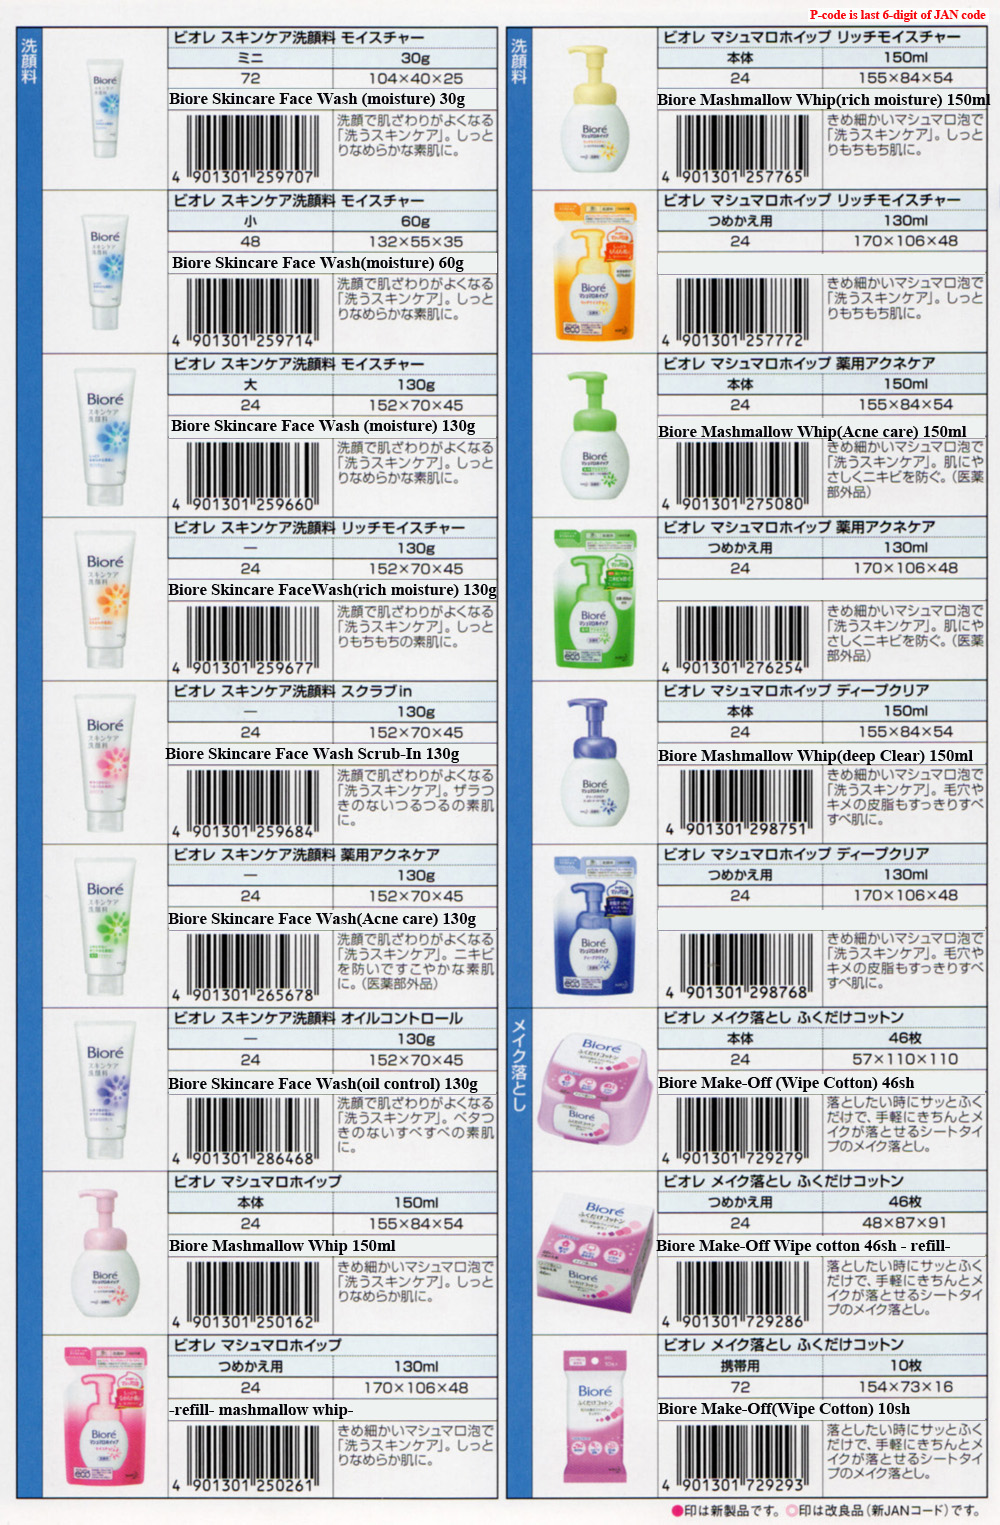 Japanese Cosmetic Exporter Site Kao Skincare Cosmetics Biore Facial Foam Men S Double Scrub Cool Oil Clear 100g Cleansing Fash Wash3size Face Washrich Moist Wash In Acne Care Control